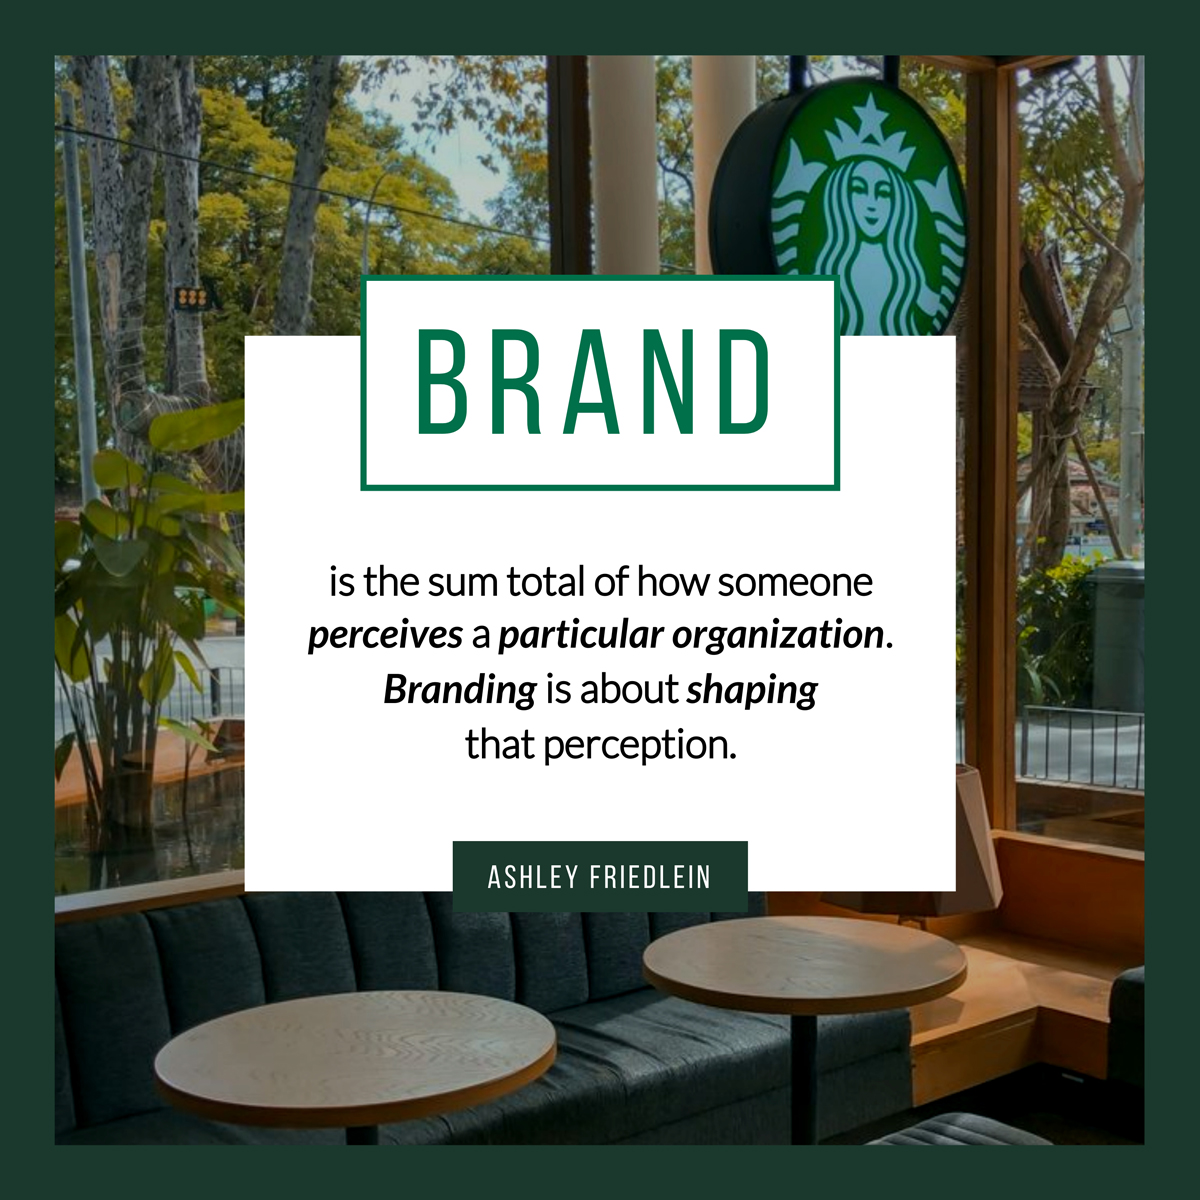 A quote about branding by Ashley Friedlein.